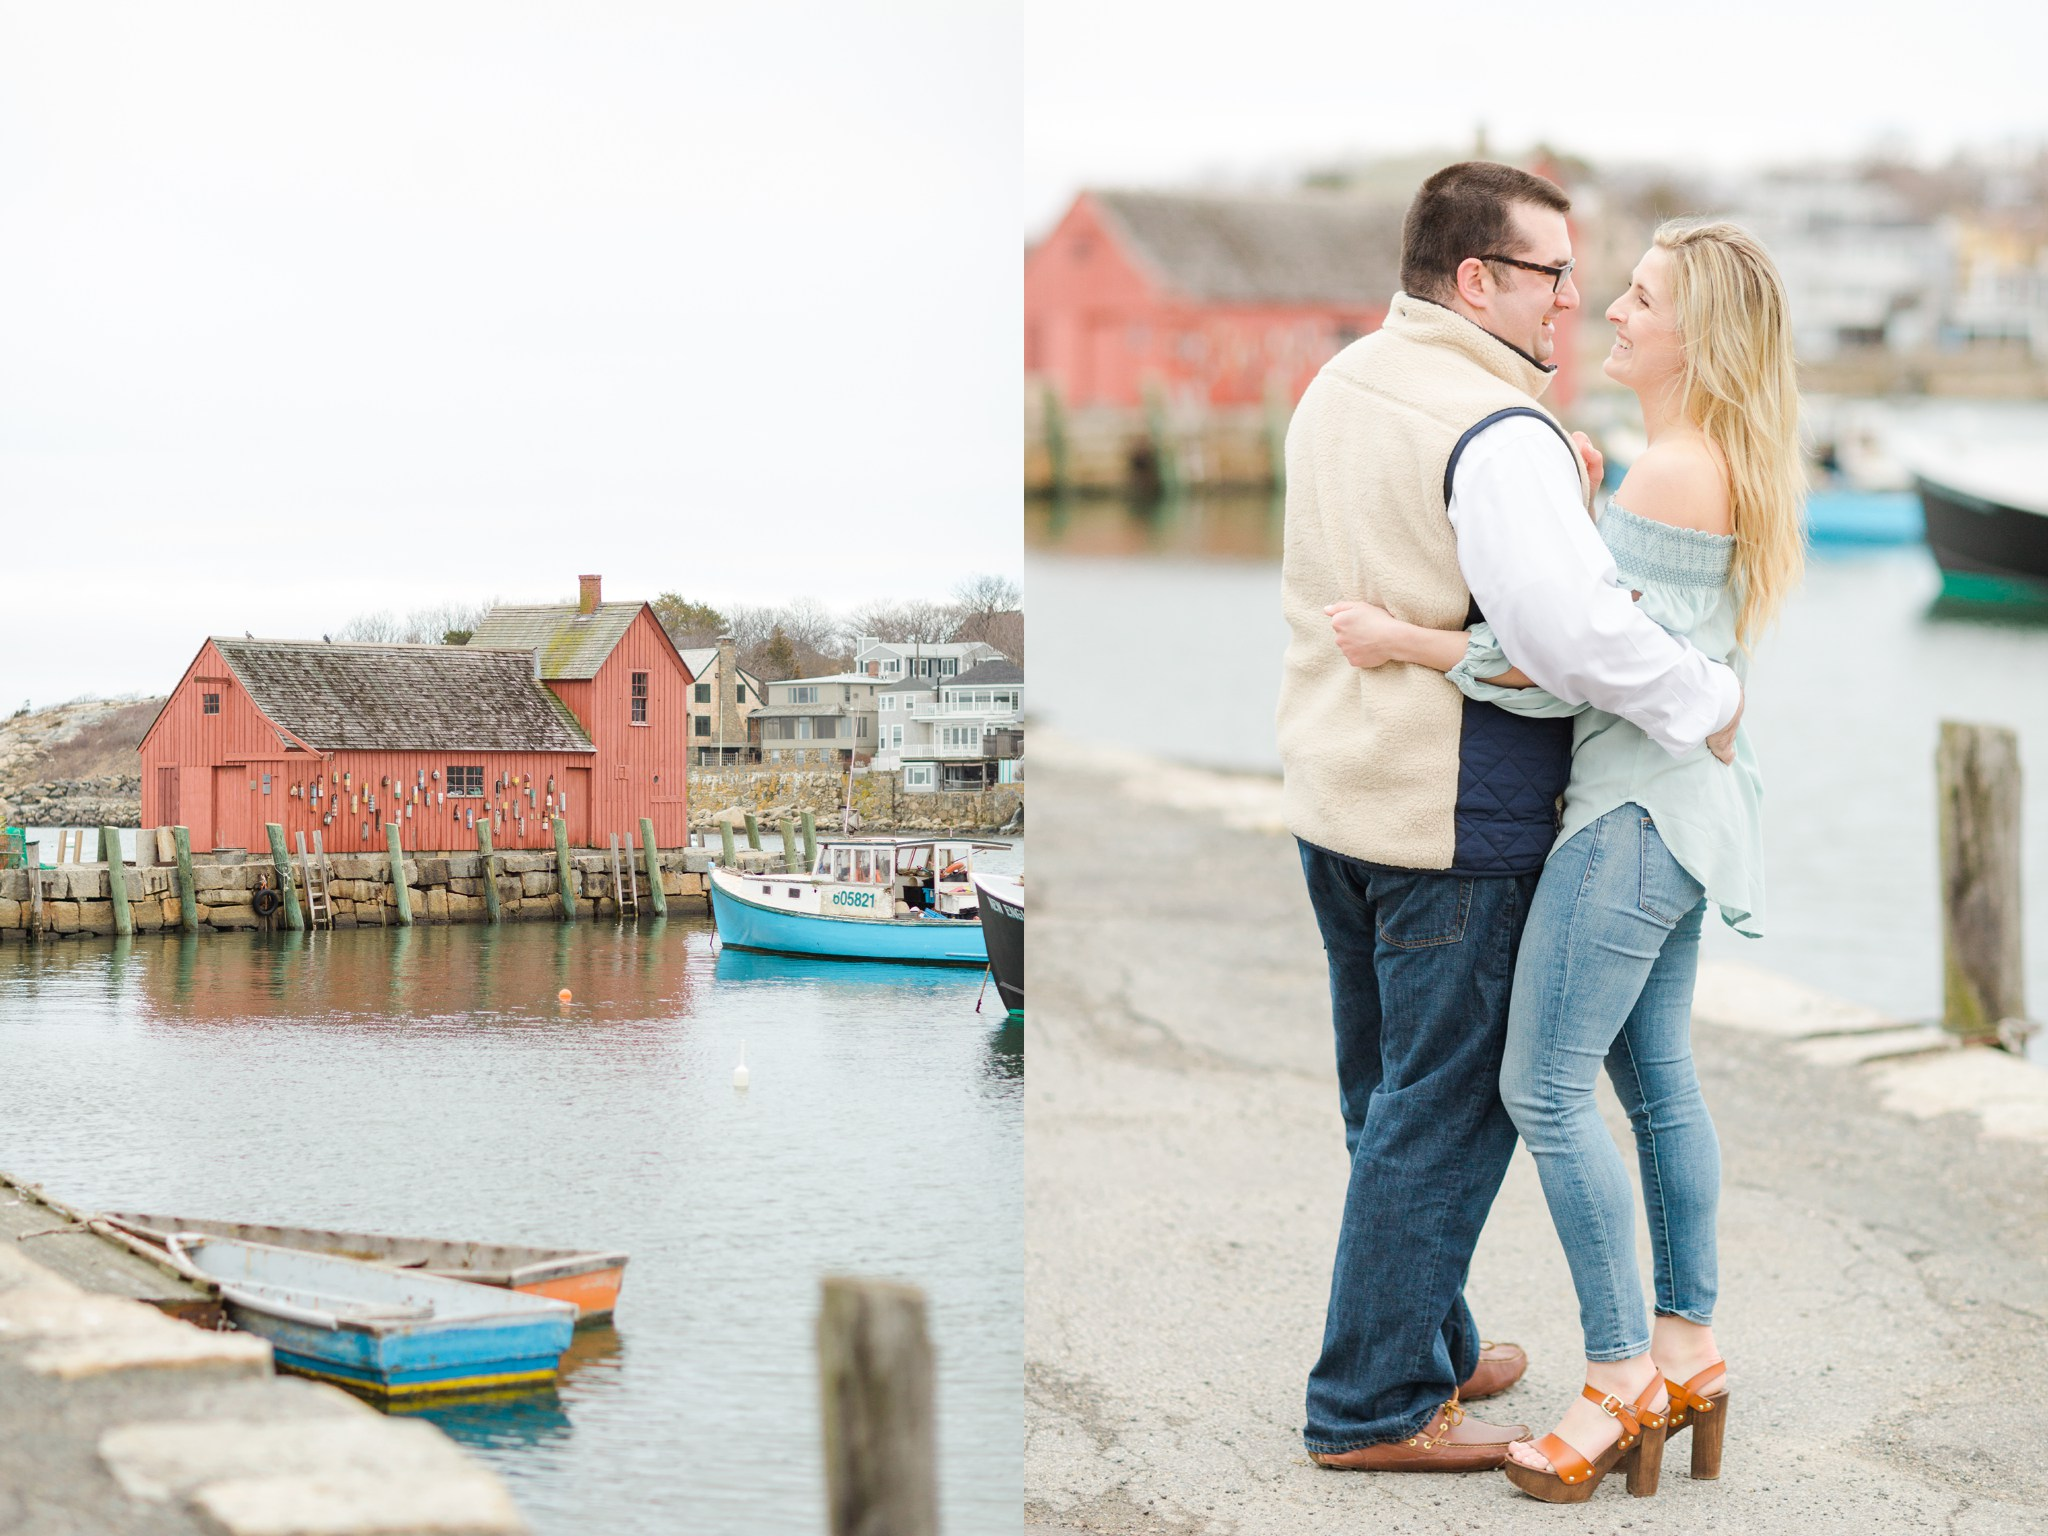 rockport_MA_engagement_session_Deborah_Zoe_Photography_00158.JPG